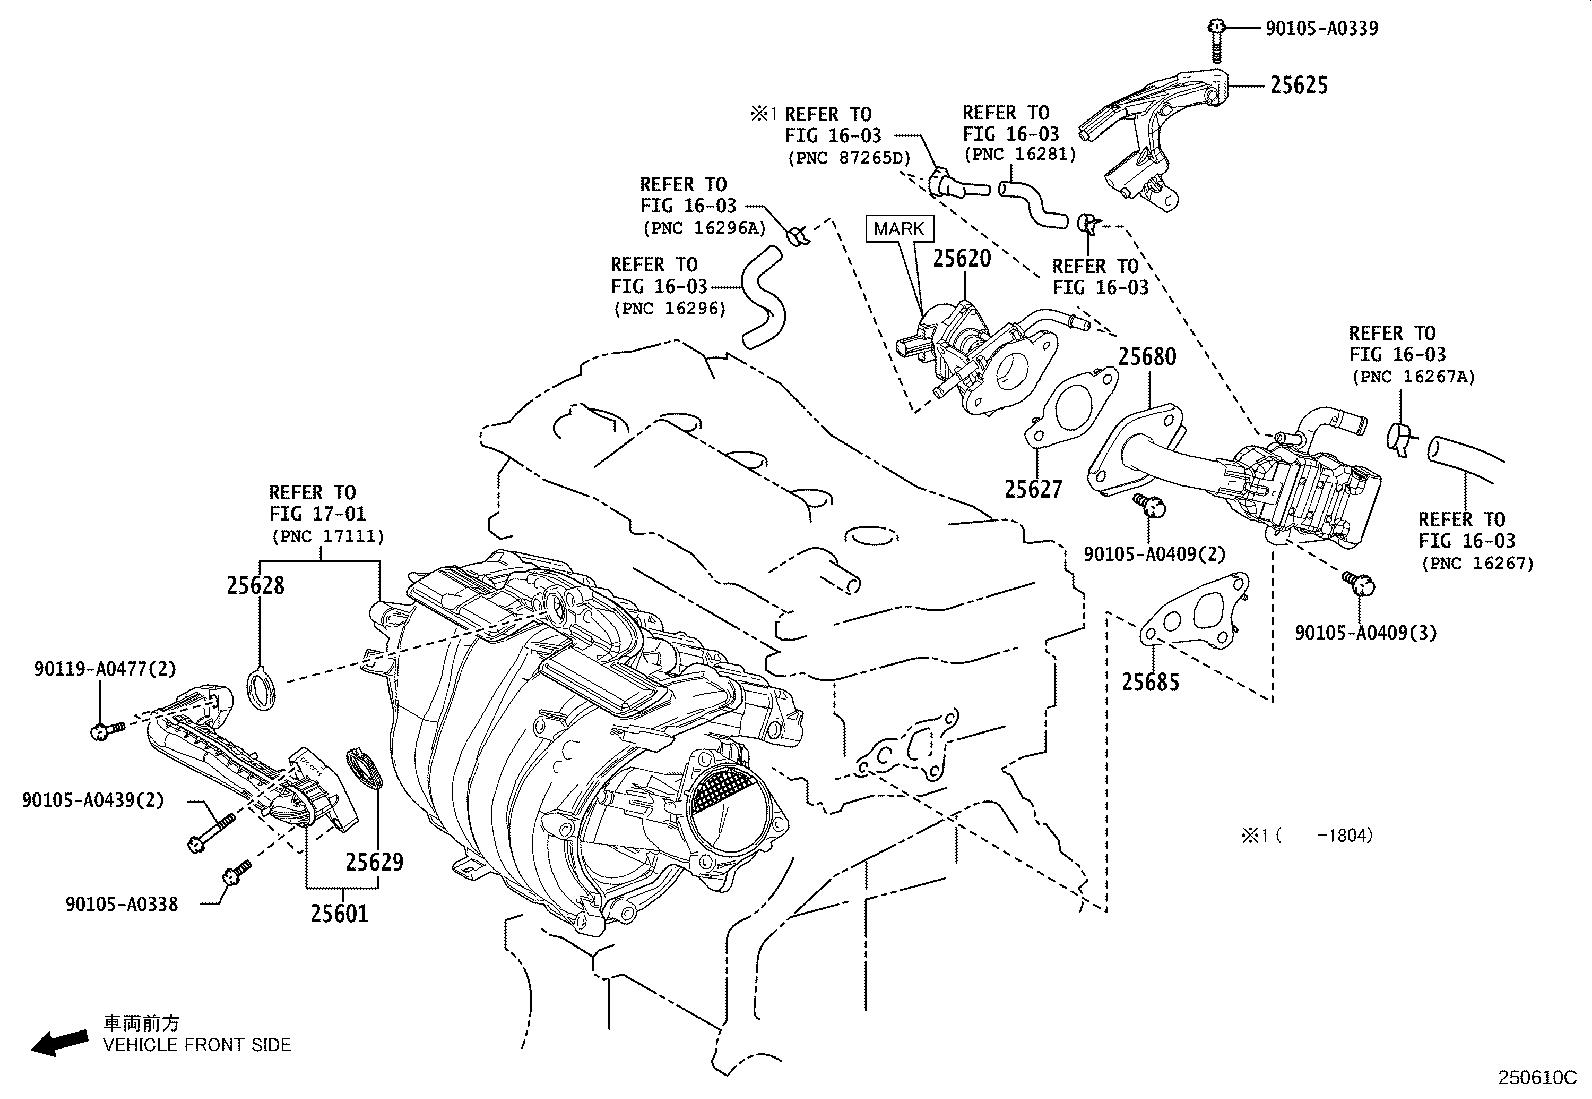 2019 Toyota Camry Egr Tube  Pipe  Egr  No 1  System  Fuel